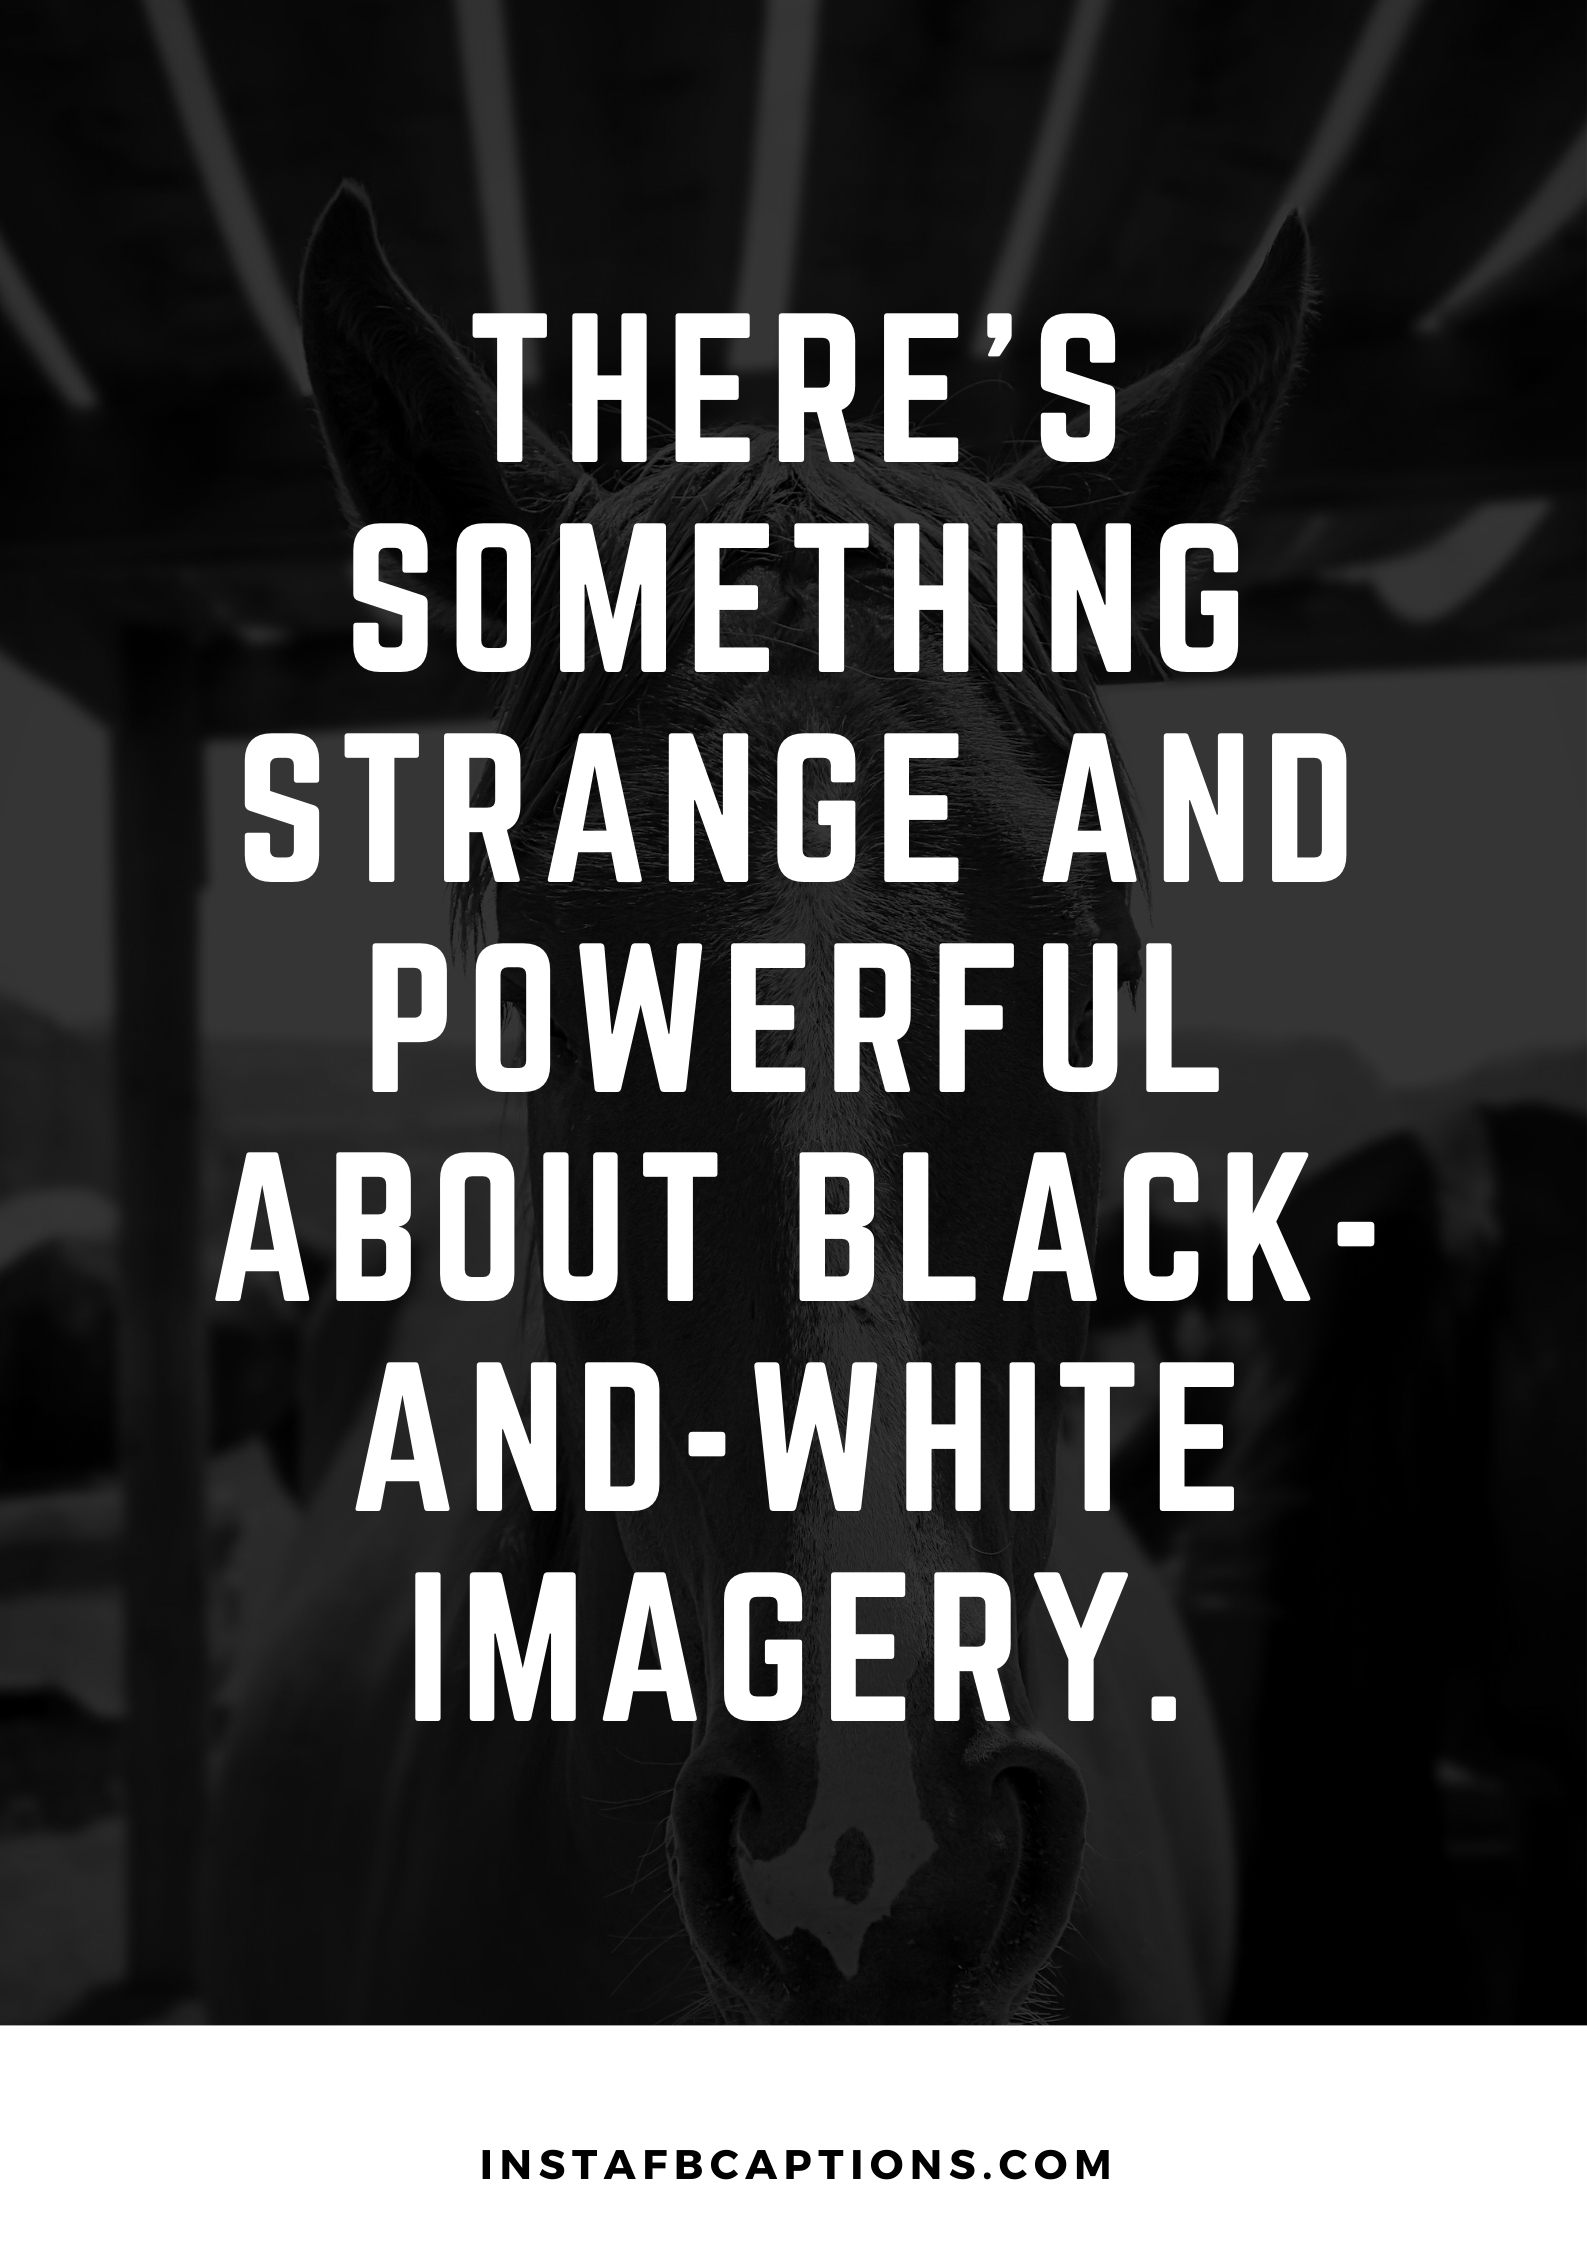 Fun Black And White Quotes In 2021  - Fun Black and White Quotes in 2021 - Black and White Instagram Photo Captions and Quotes in 2021